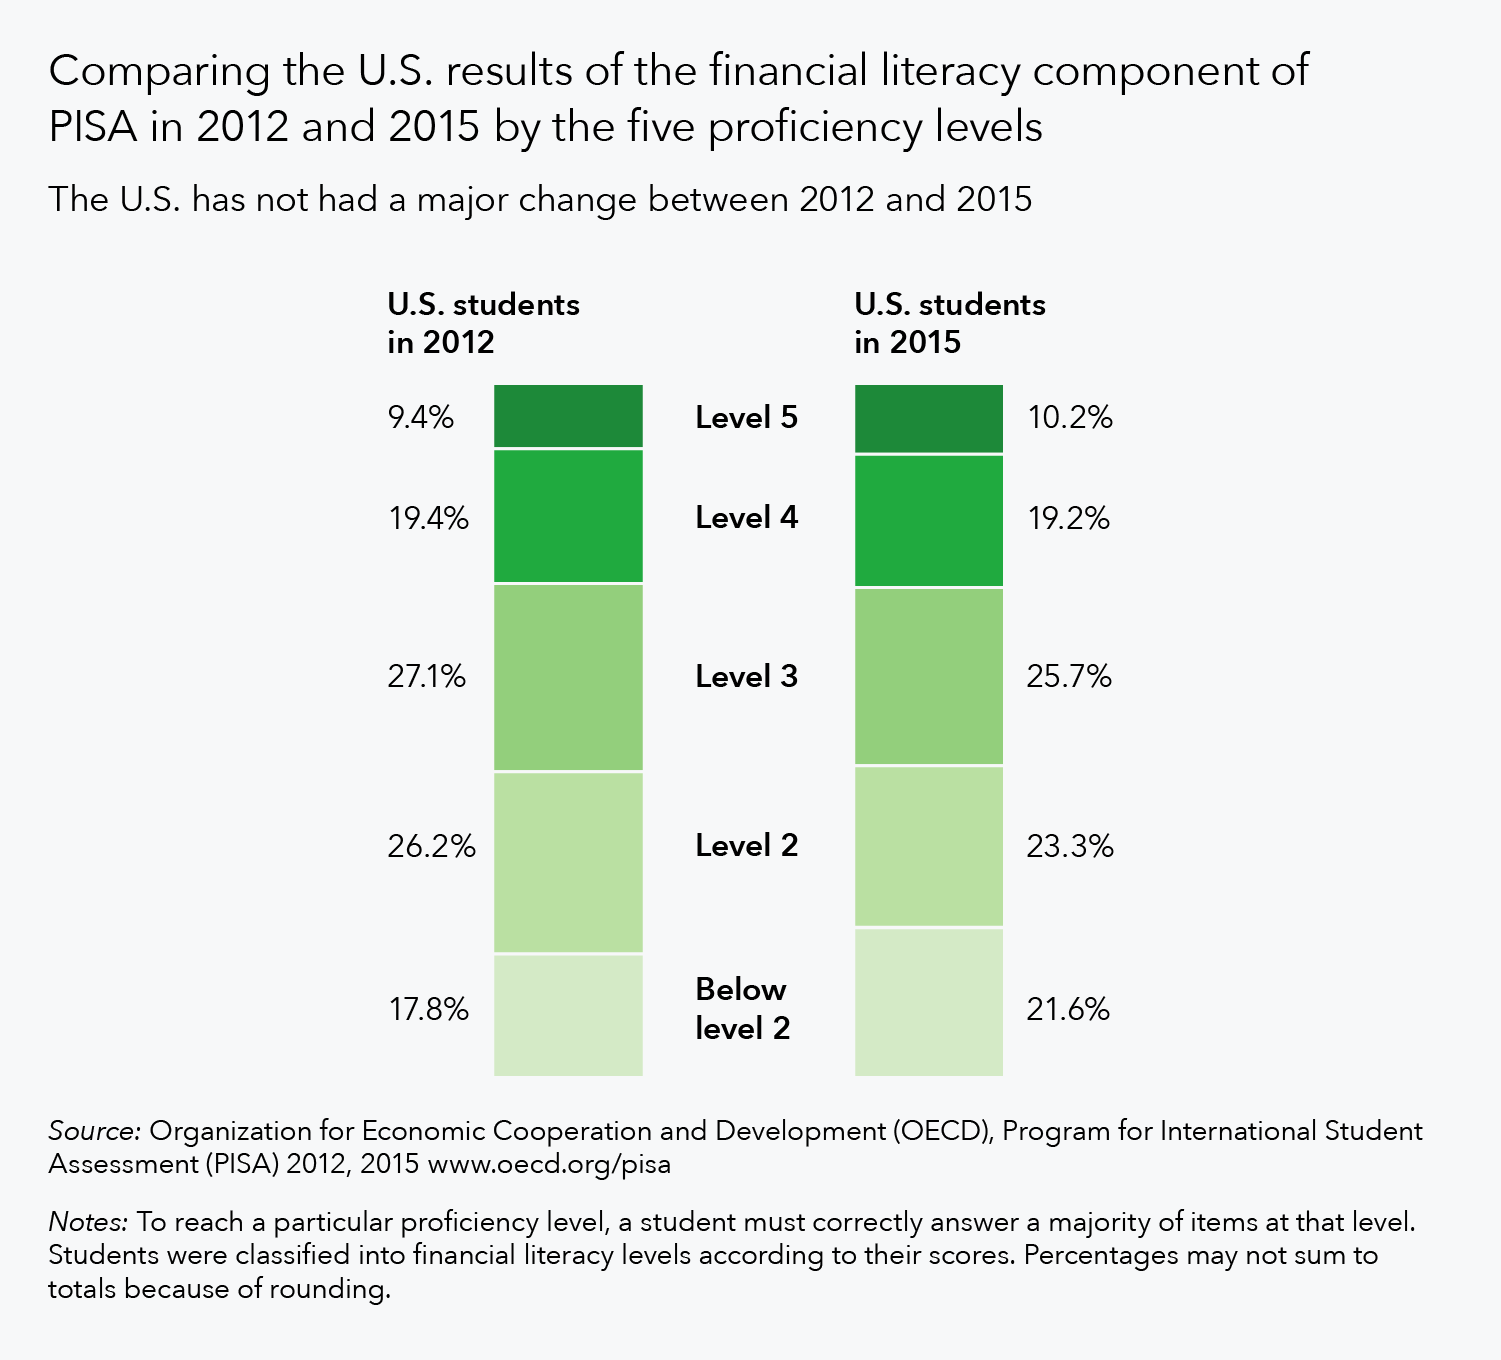 Graph comparing U.S. results of financial literacy component of PISA in 2012 and 2015.